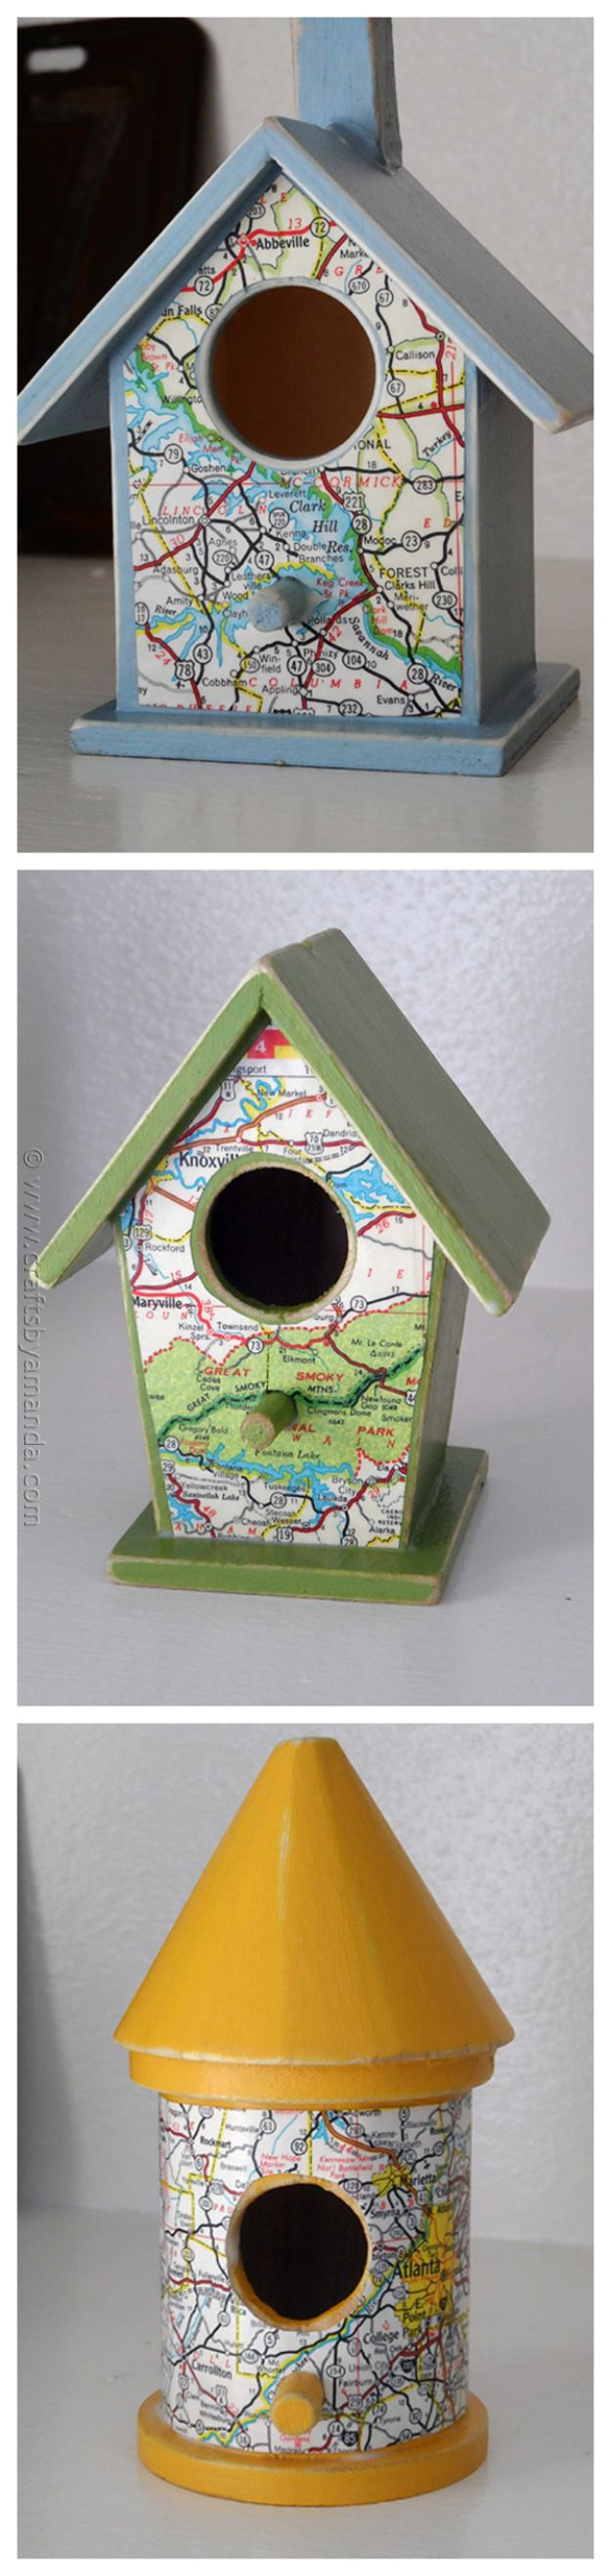 Road Map BirdhouDIY Ideas With Maps - Road Map Birdhouses - Easy Crafts, Home Decor, Art and Gifts Your Can Make With A Map - Pinboard, Canvas, Painting, Paper Flowers, Signs Projectsses